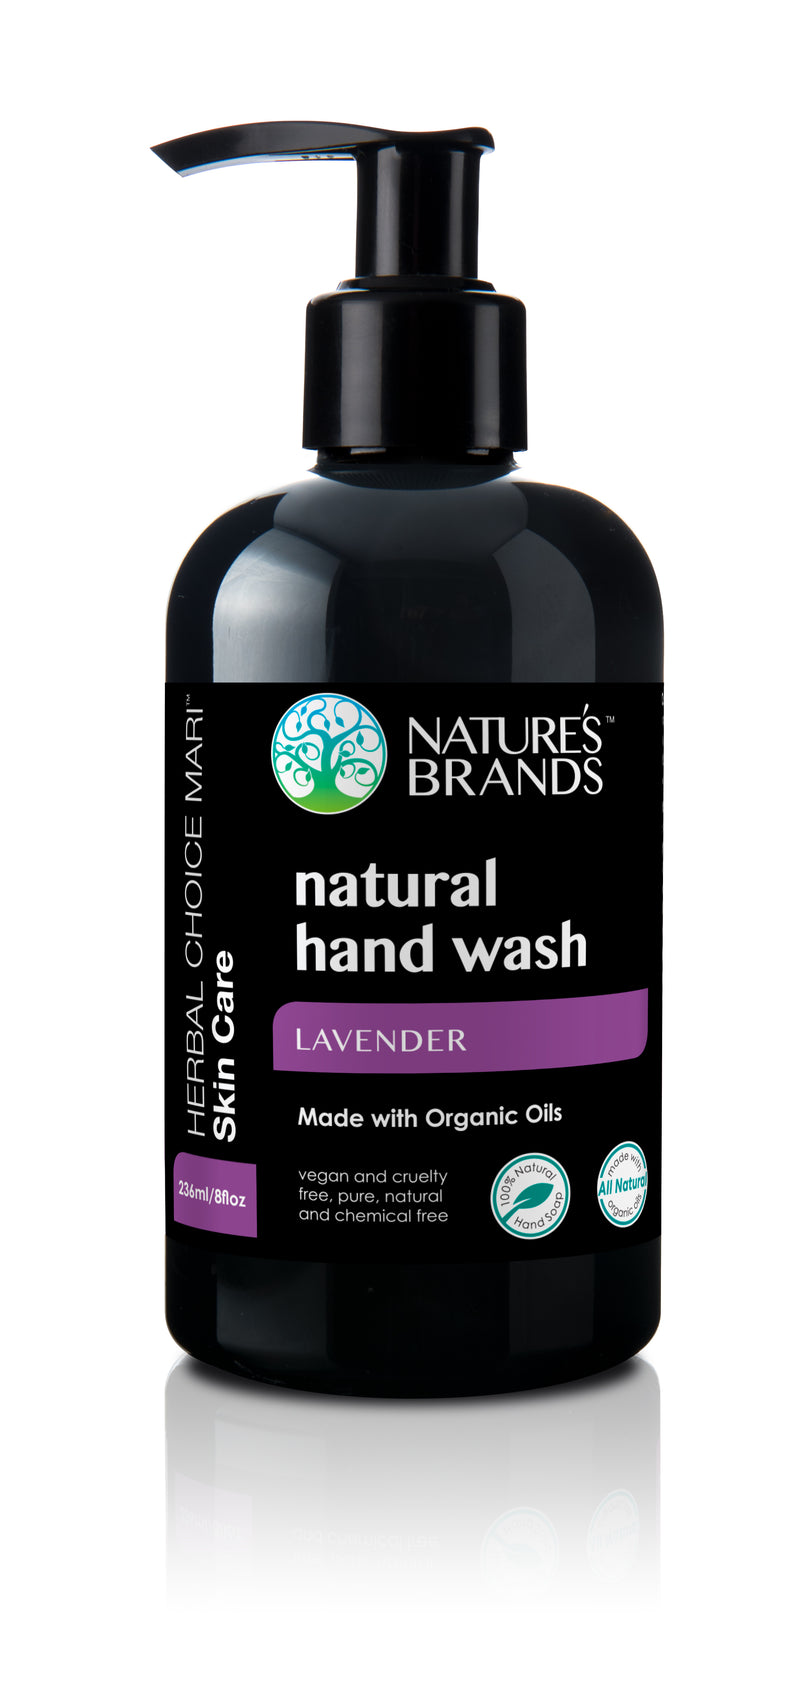 Herbal Choice Mari Hand Soap(Wash) - Herbal Choice Mari Hand Soap(Wash) - Herbal Choice Mari Hand Soap(Wash)